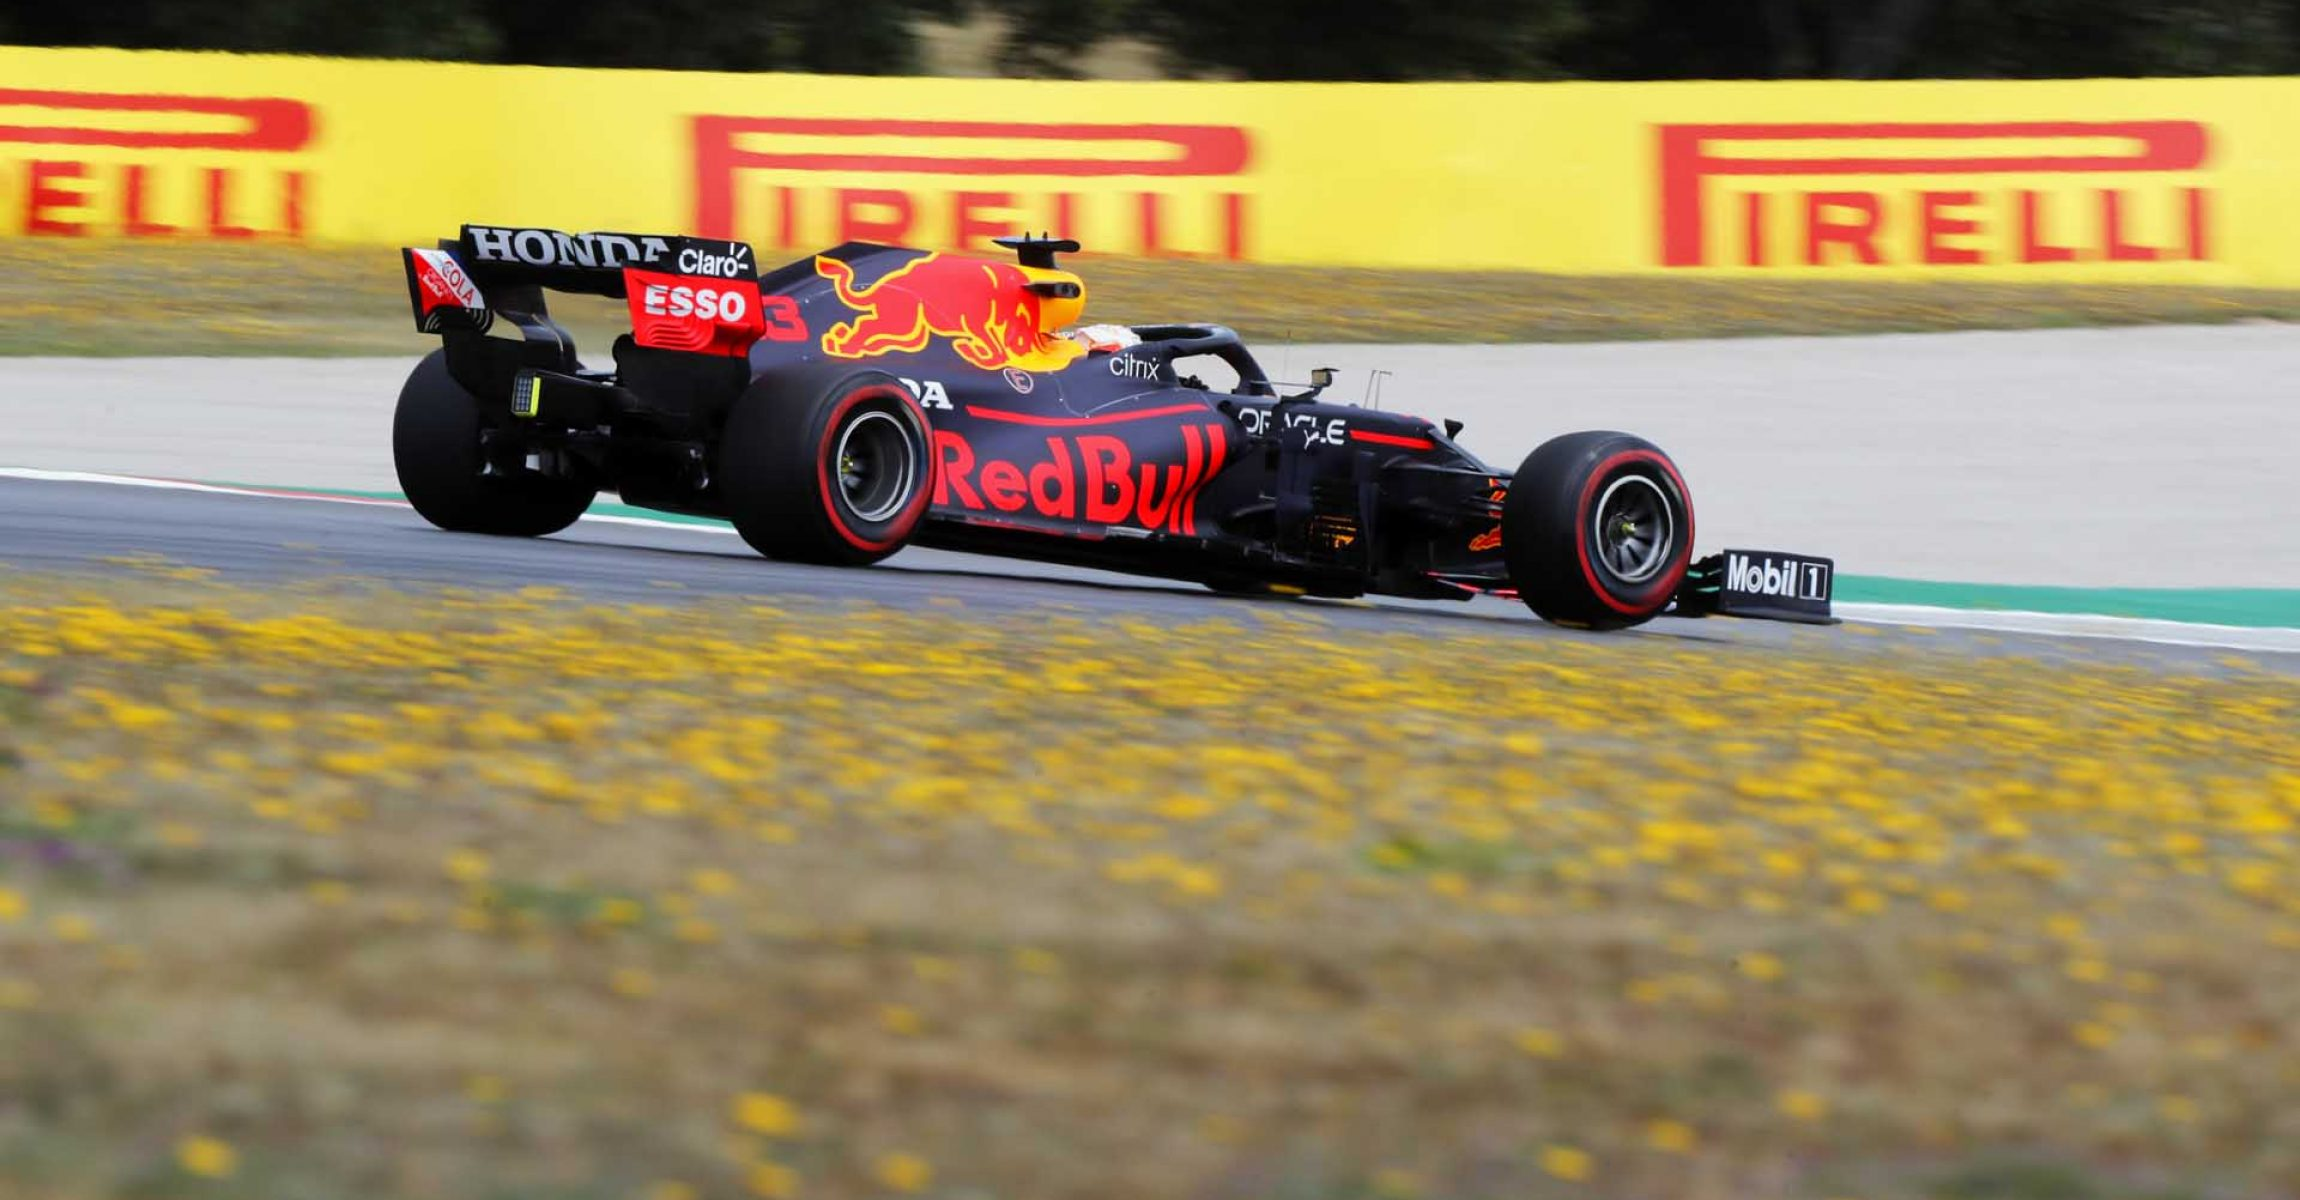 ALGARVE INTERNATIONAL CIRCUIT, PORTUGAL - MAY 01: Max Verstappen, Red Bull Racing RB16B during the Portuguese GP at Algarve International Circuit on Saturday May 01, 2021 in Portimao, Portugal. (Photo by Steven Tee / LAT Images)